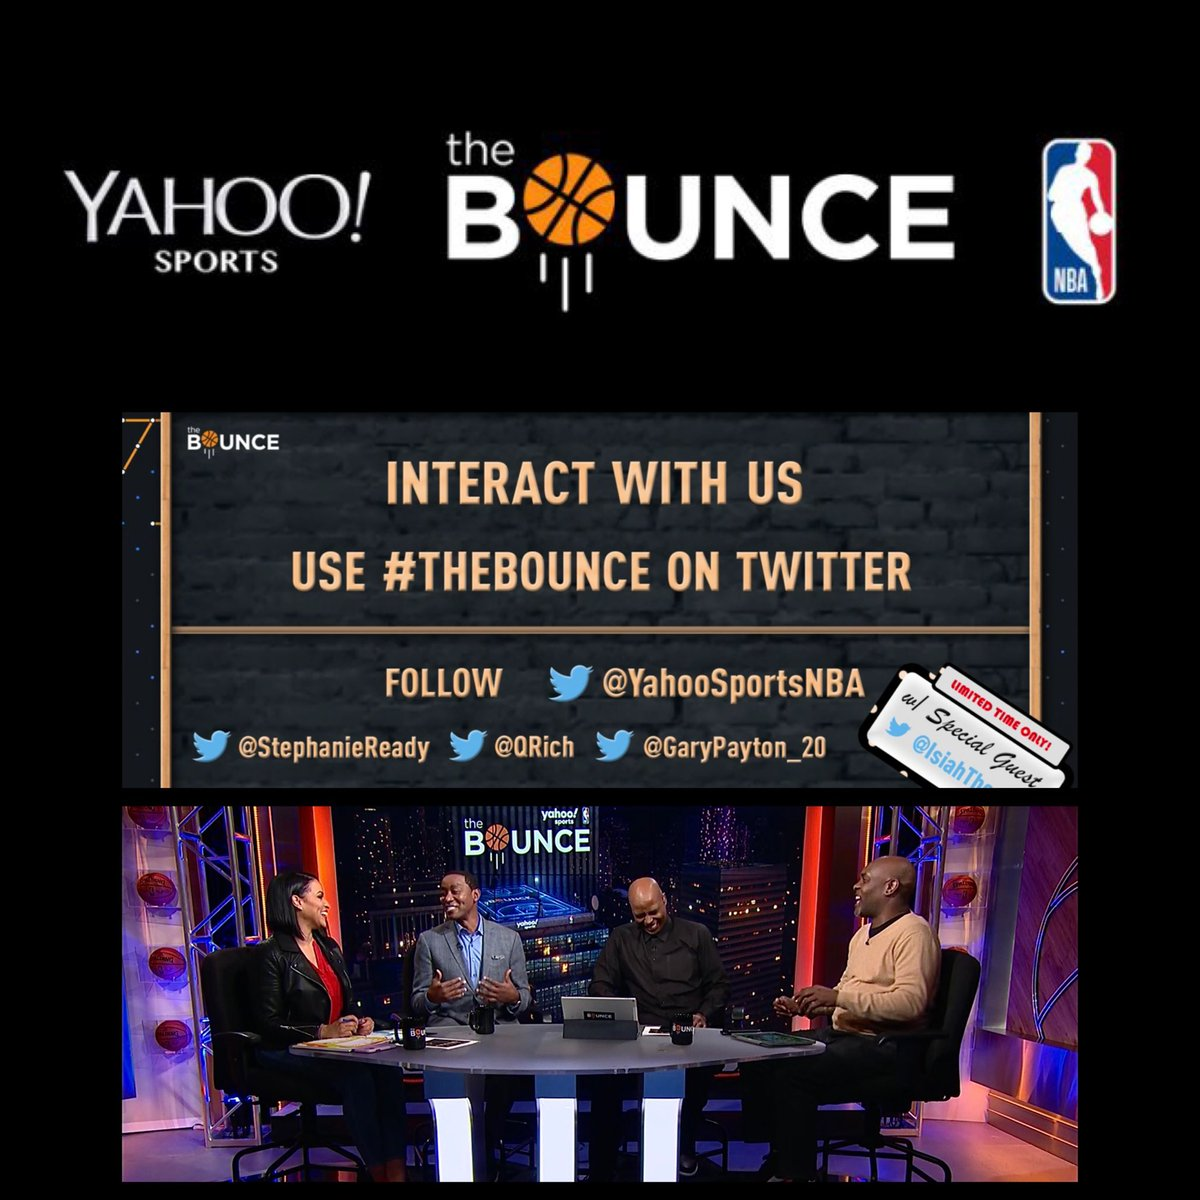 I hope y'all are watching @nba  #TheBounce online @yahoosports app *Mon * Wed *Fri. 7:30 p.m. (EST) Until Final Basketball Game Ends! 👀 with Host @StephanieReady and Analysts @GaryPayton_20 @qrich @IsiahThomas makeup, hair and male grooming by @jamillahsimmons